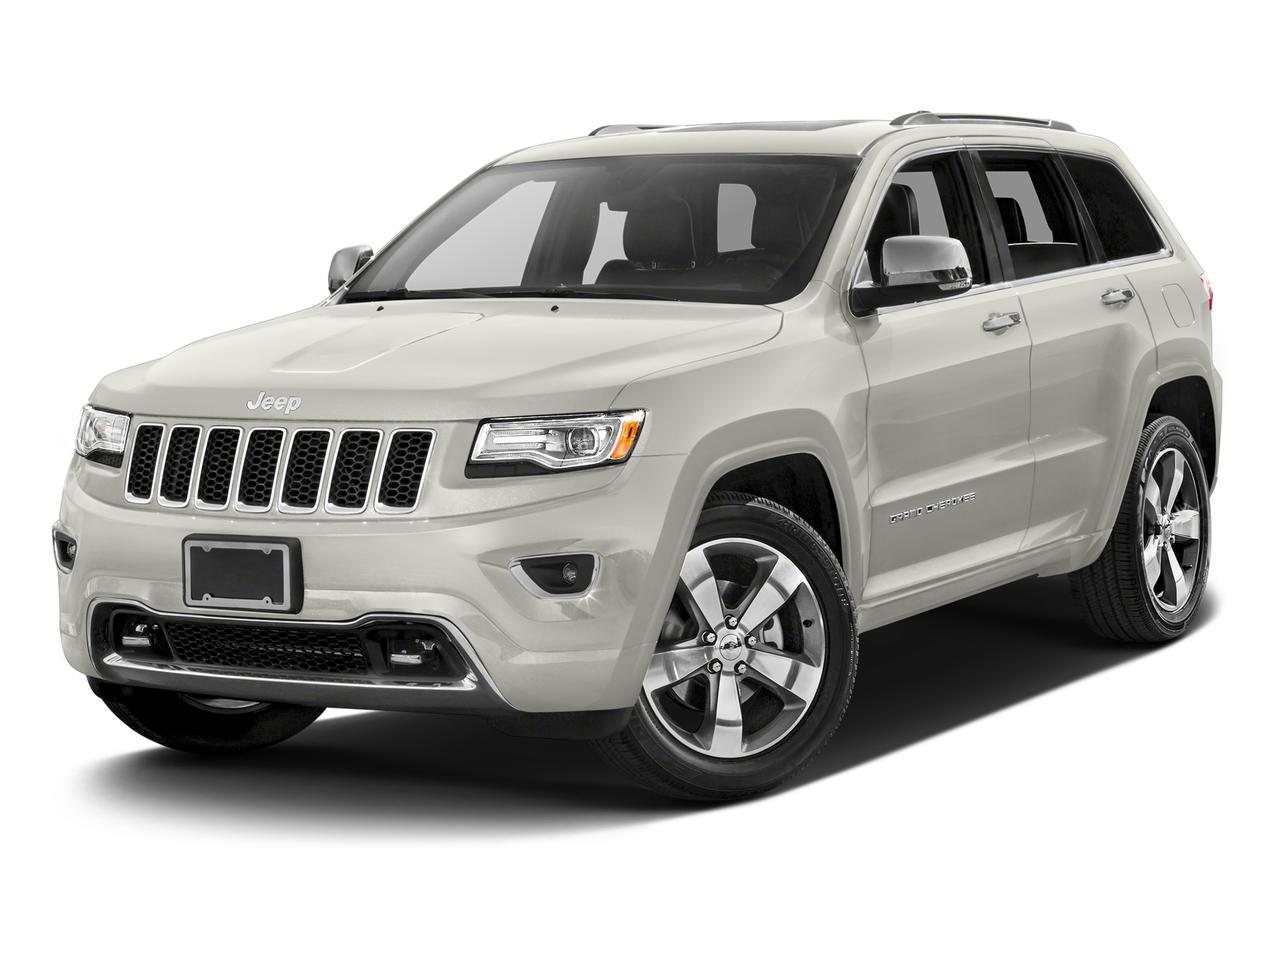 2016 Jeep Grand Cherokee Vehicle Photo in Tucson, AZ 85705